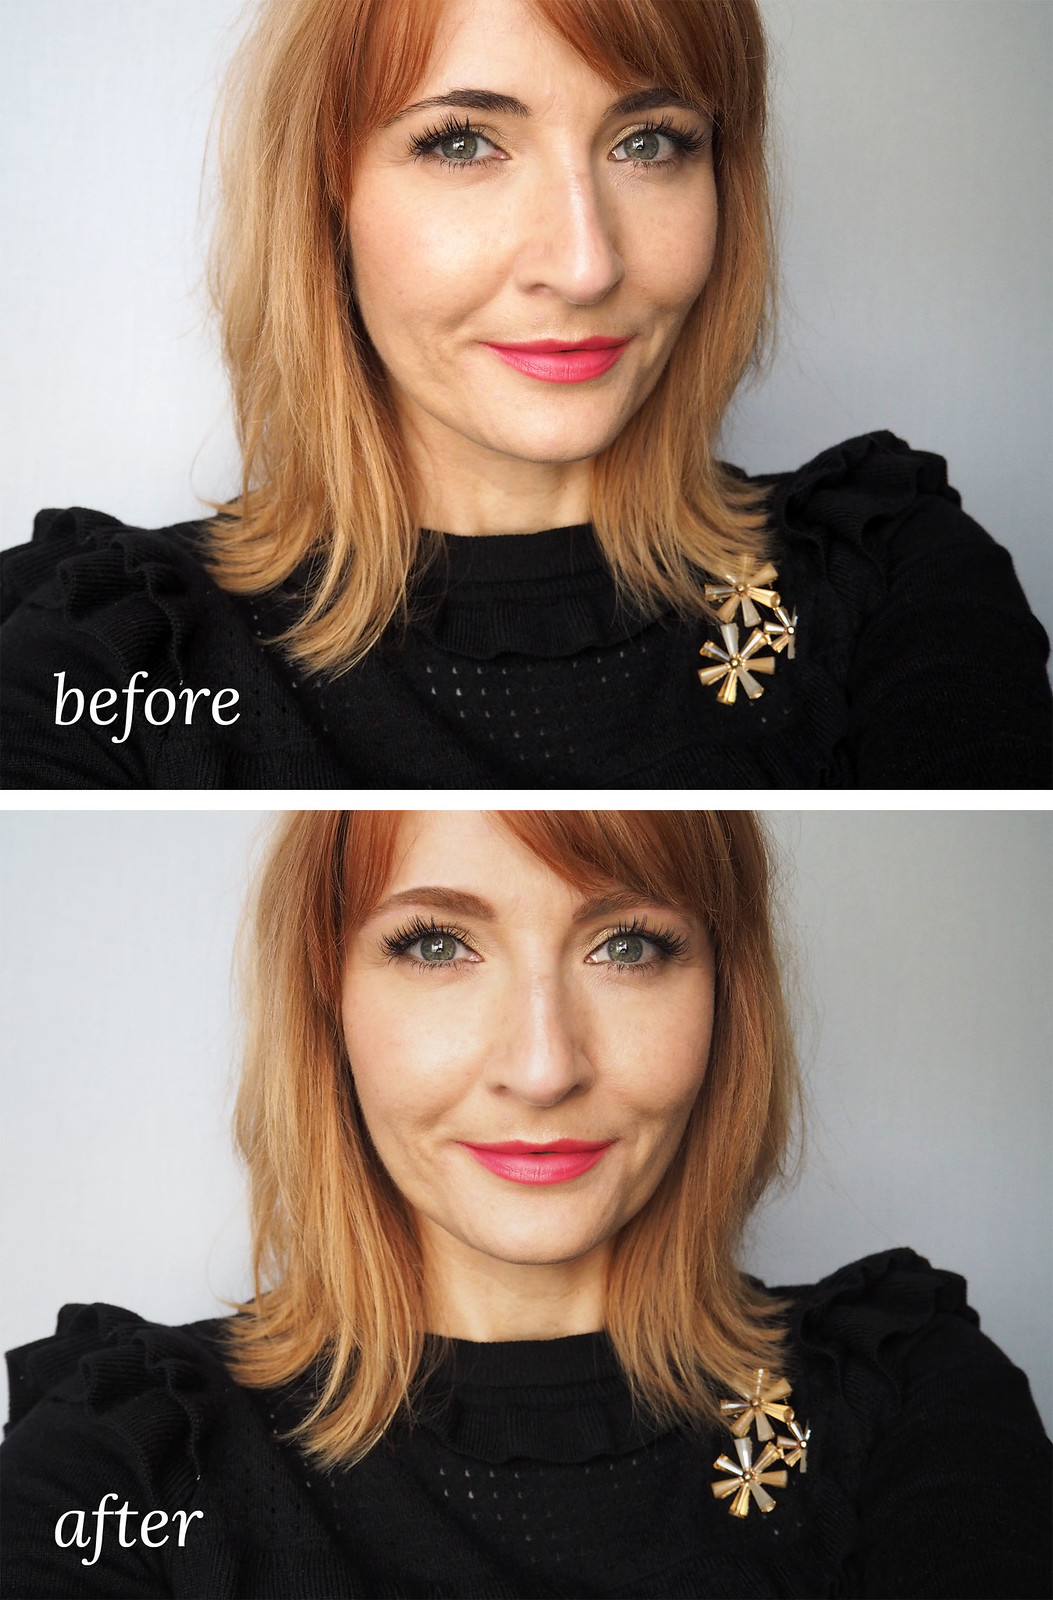 bleaching dark eyebrows to match red or blonde hair not